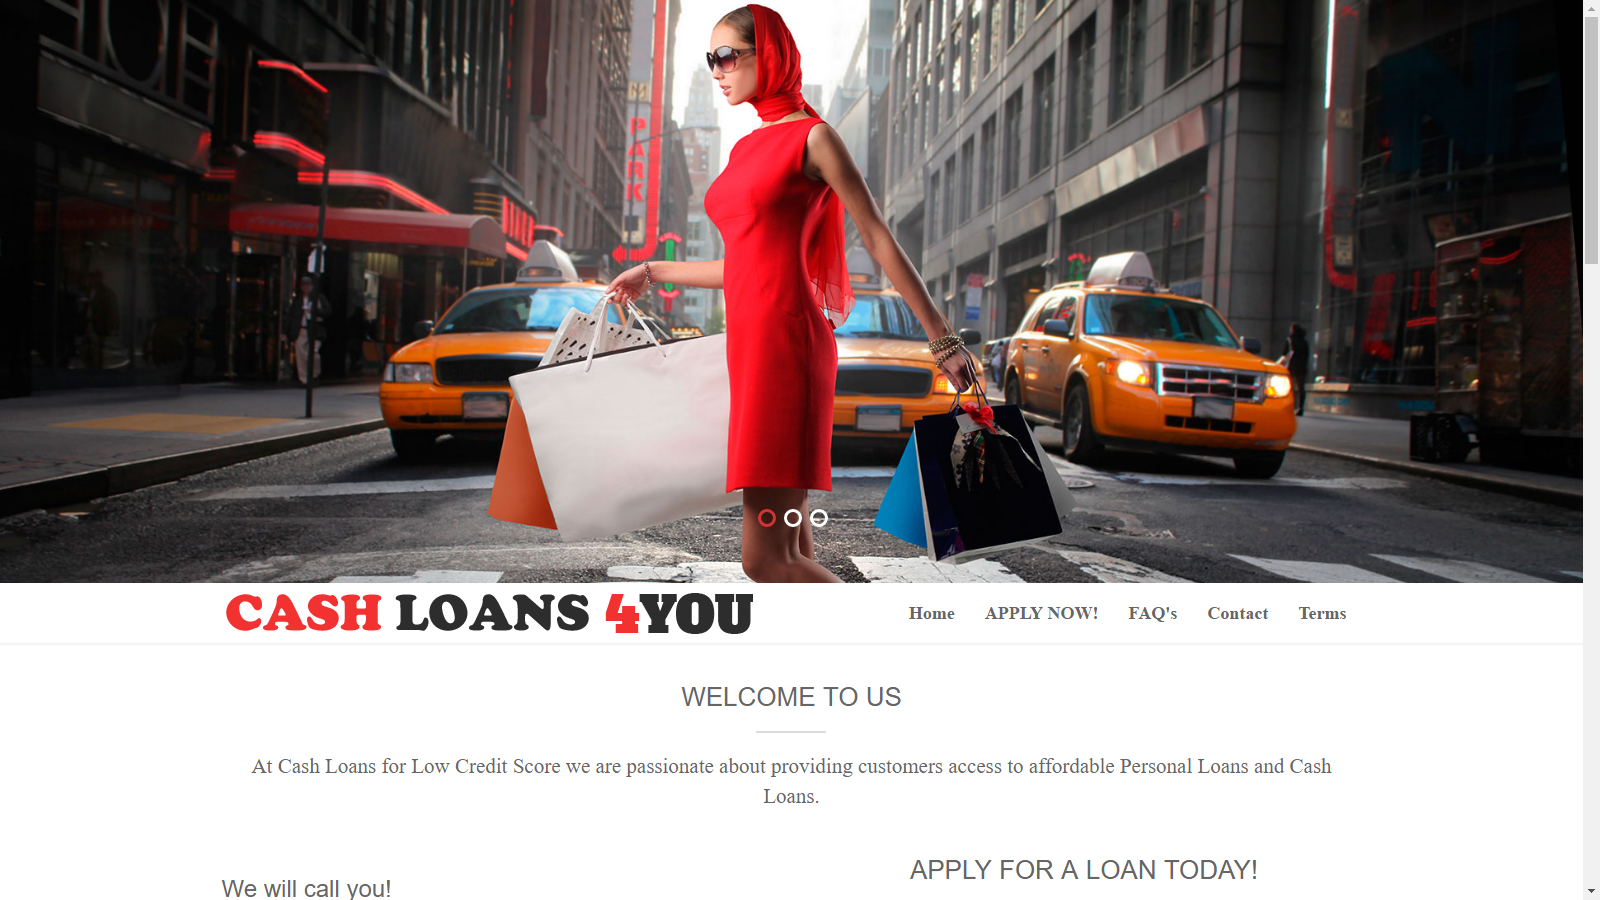 Fast cash payday loans bad credit image 10